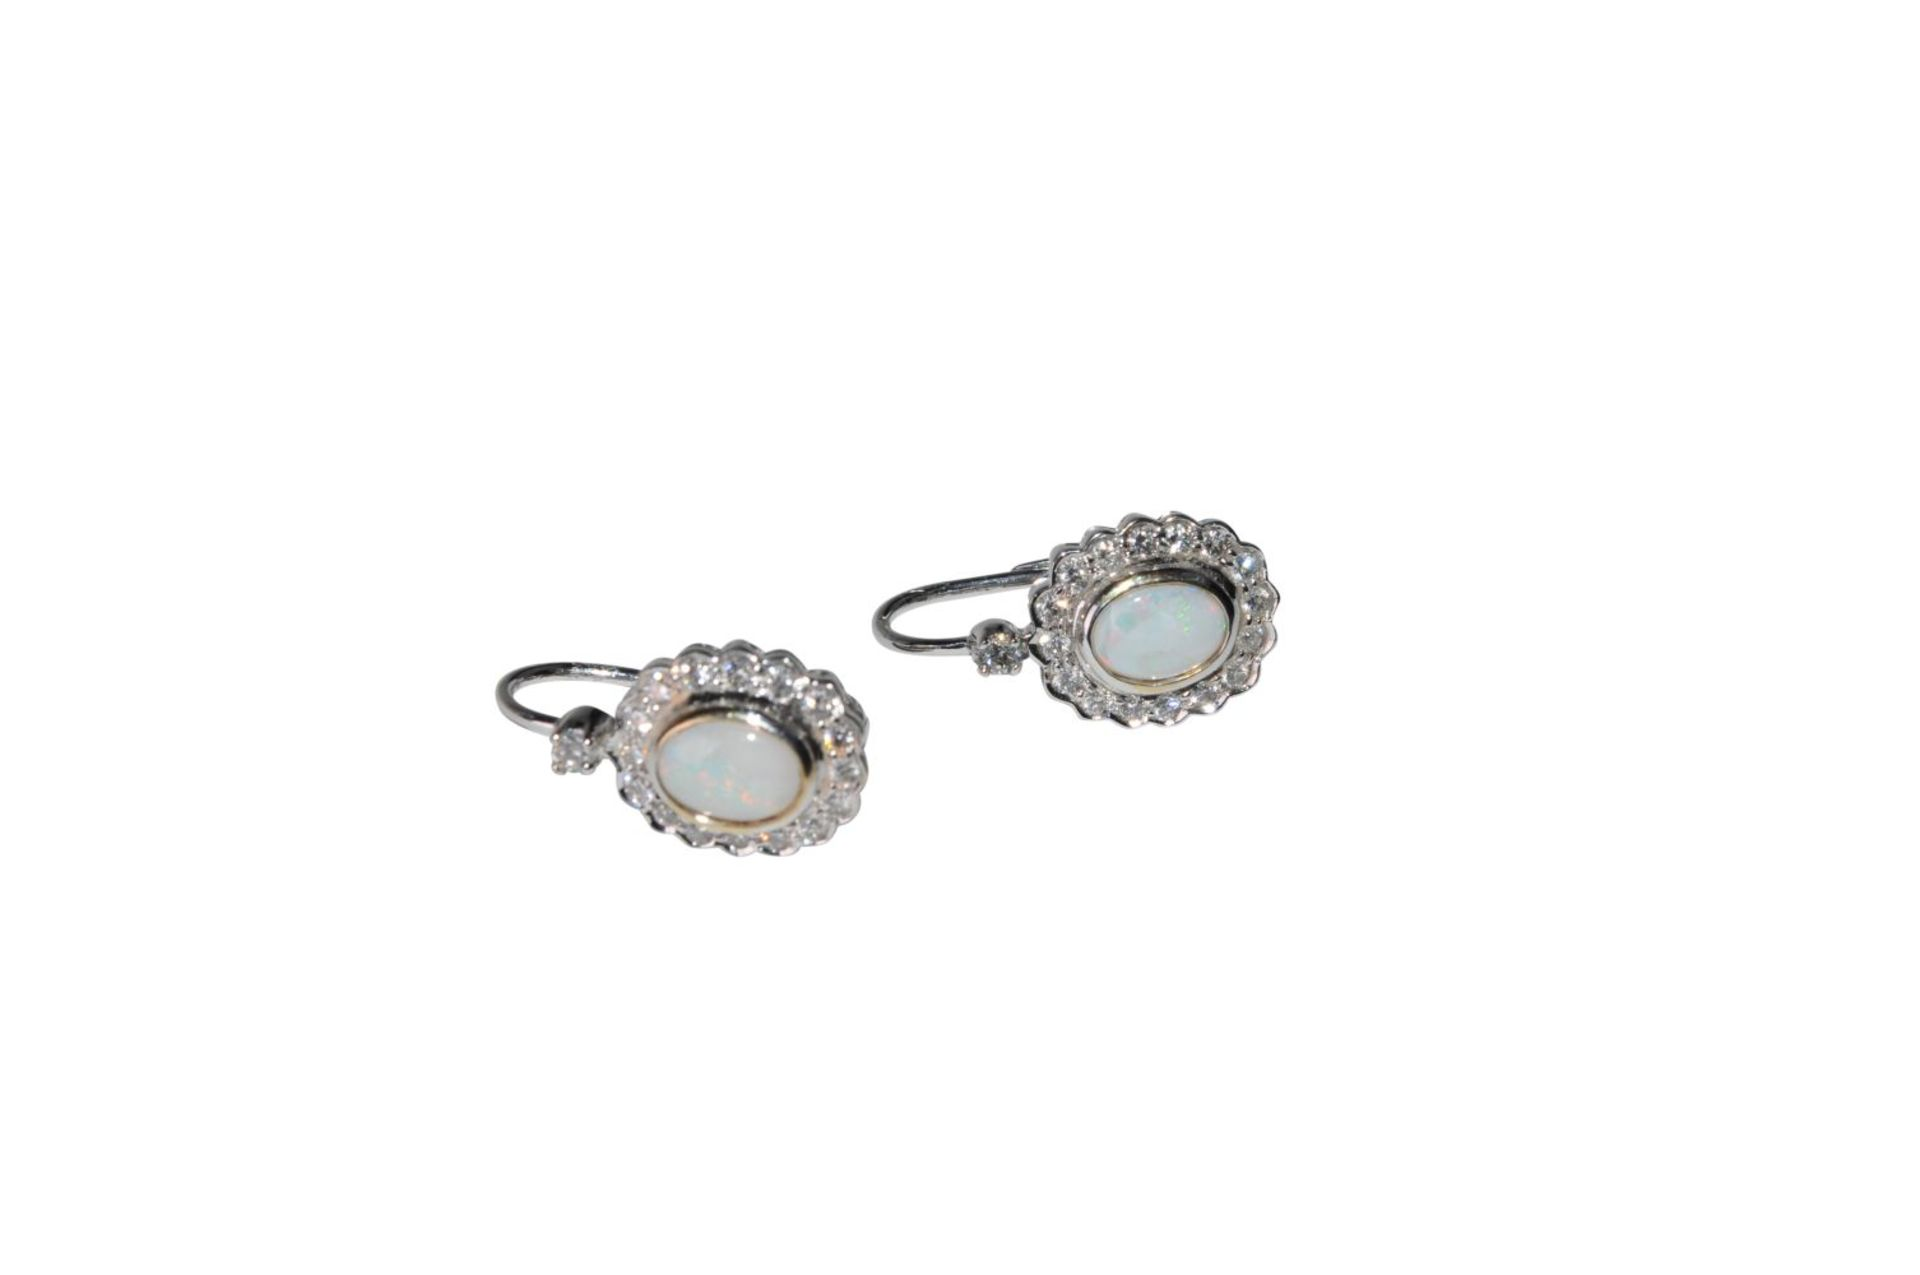 Los 106 - Ear clips18Kt white gold Ear-pendants with brilliants total carat weight approx. 0.86ct and one opal